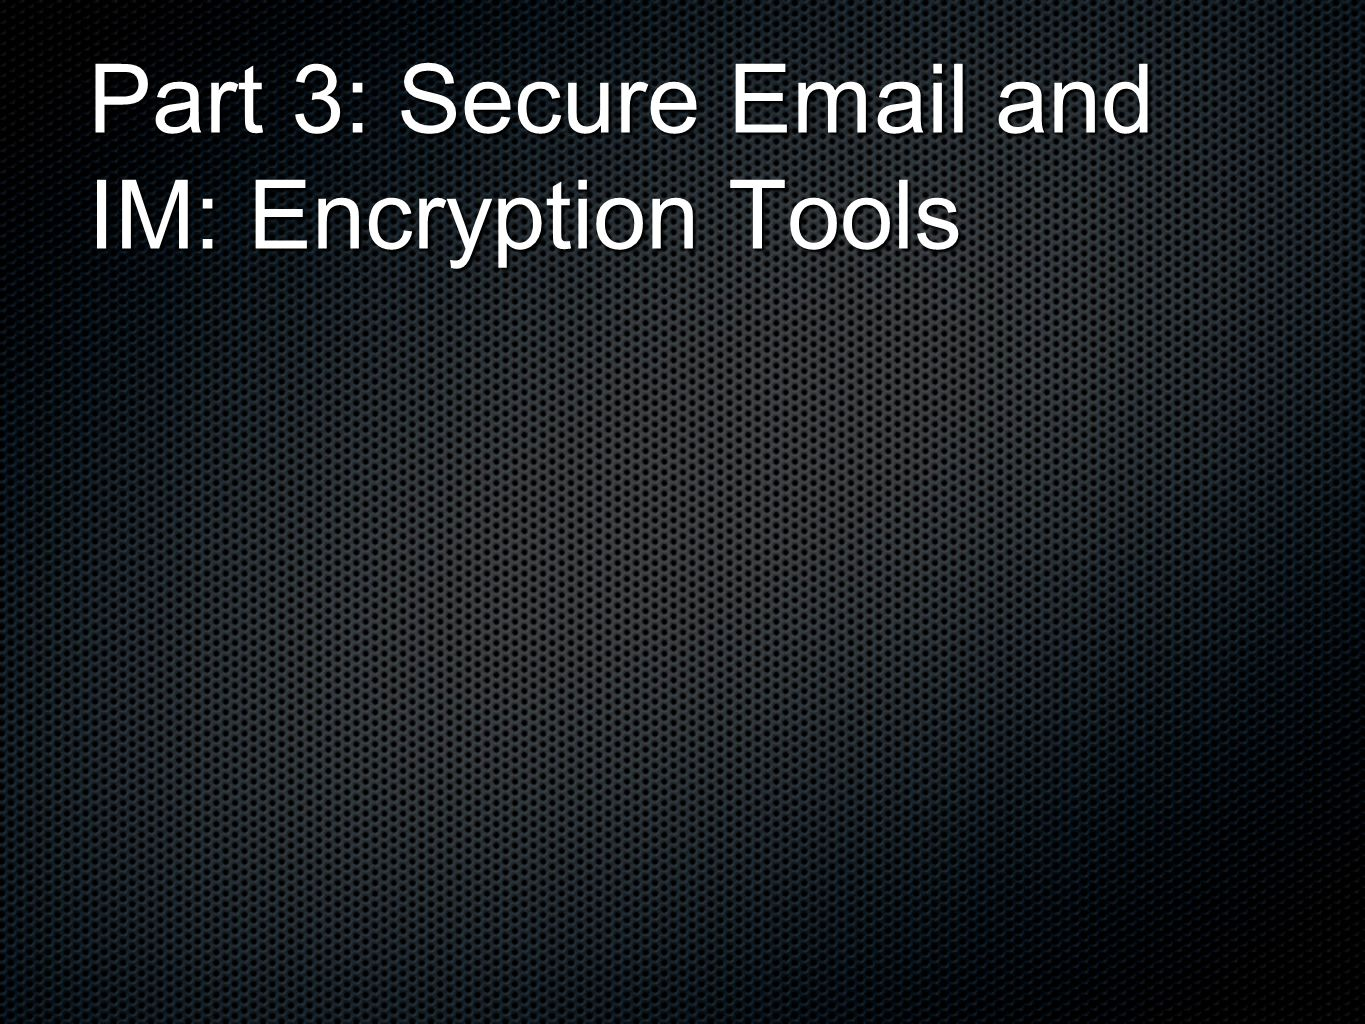 Part 3: Secure Email and IM: Encryption Tools